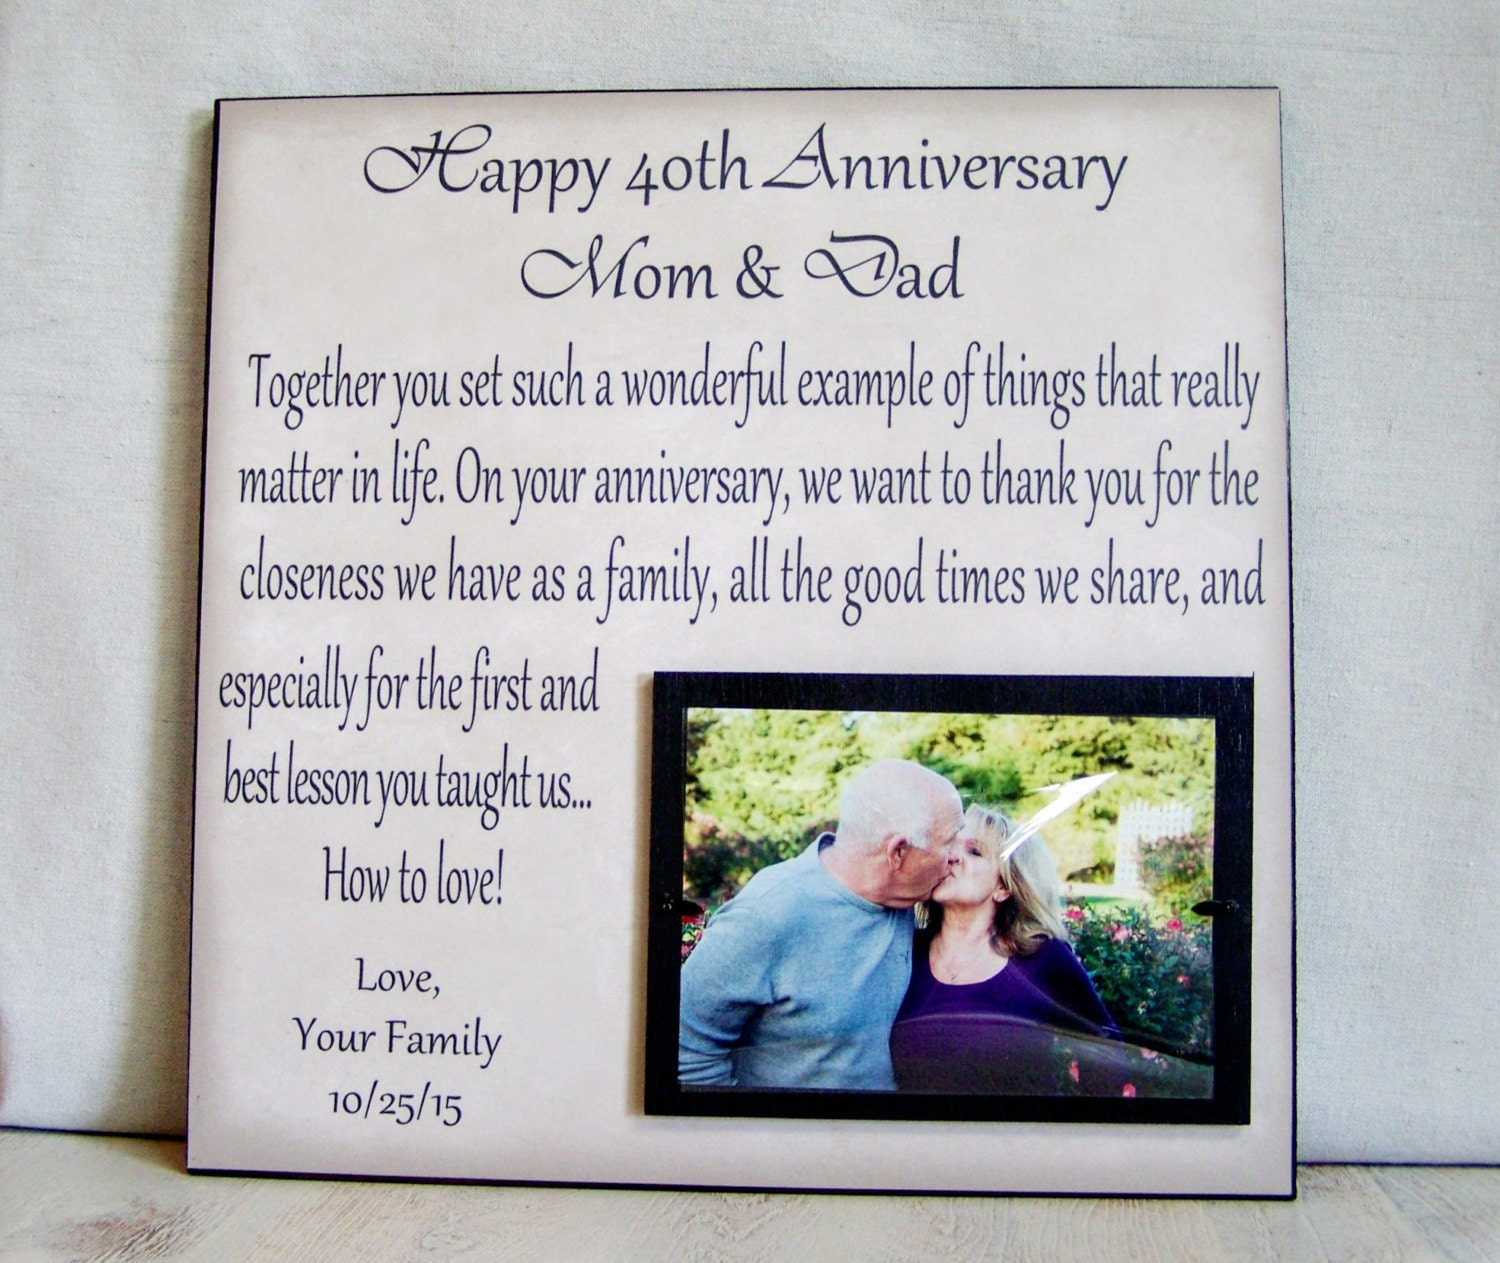 40th Wedding Anniversary Gifts For Parents Ideas : Ideas 30th Wedding Anniversary Gift For Parents anniversary picture ...